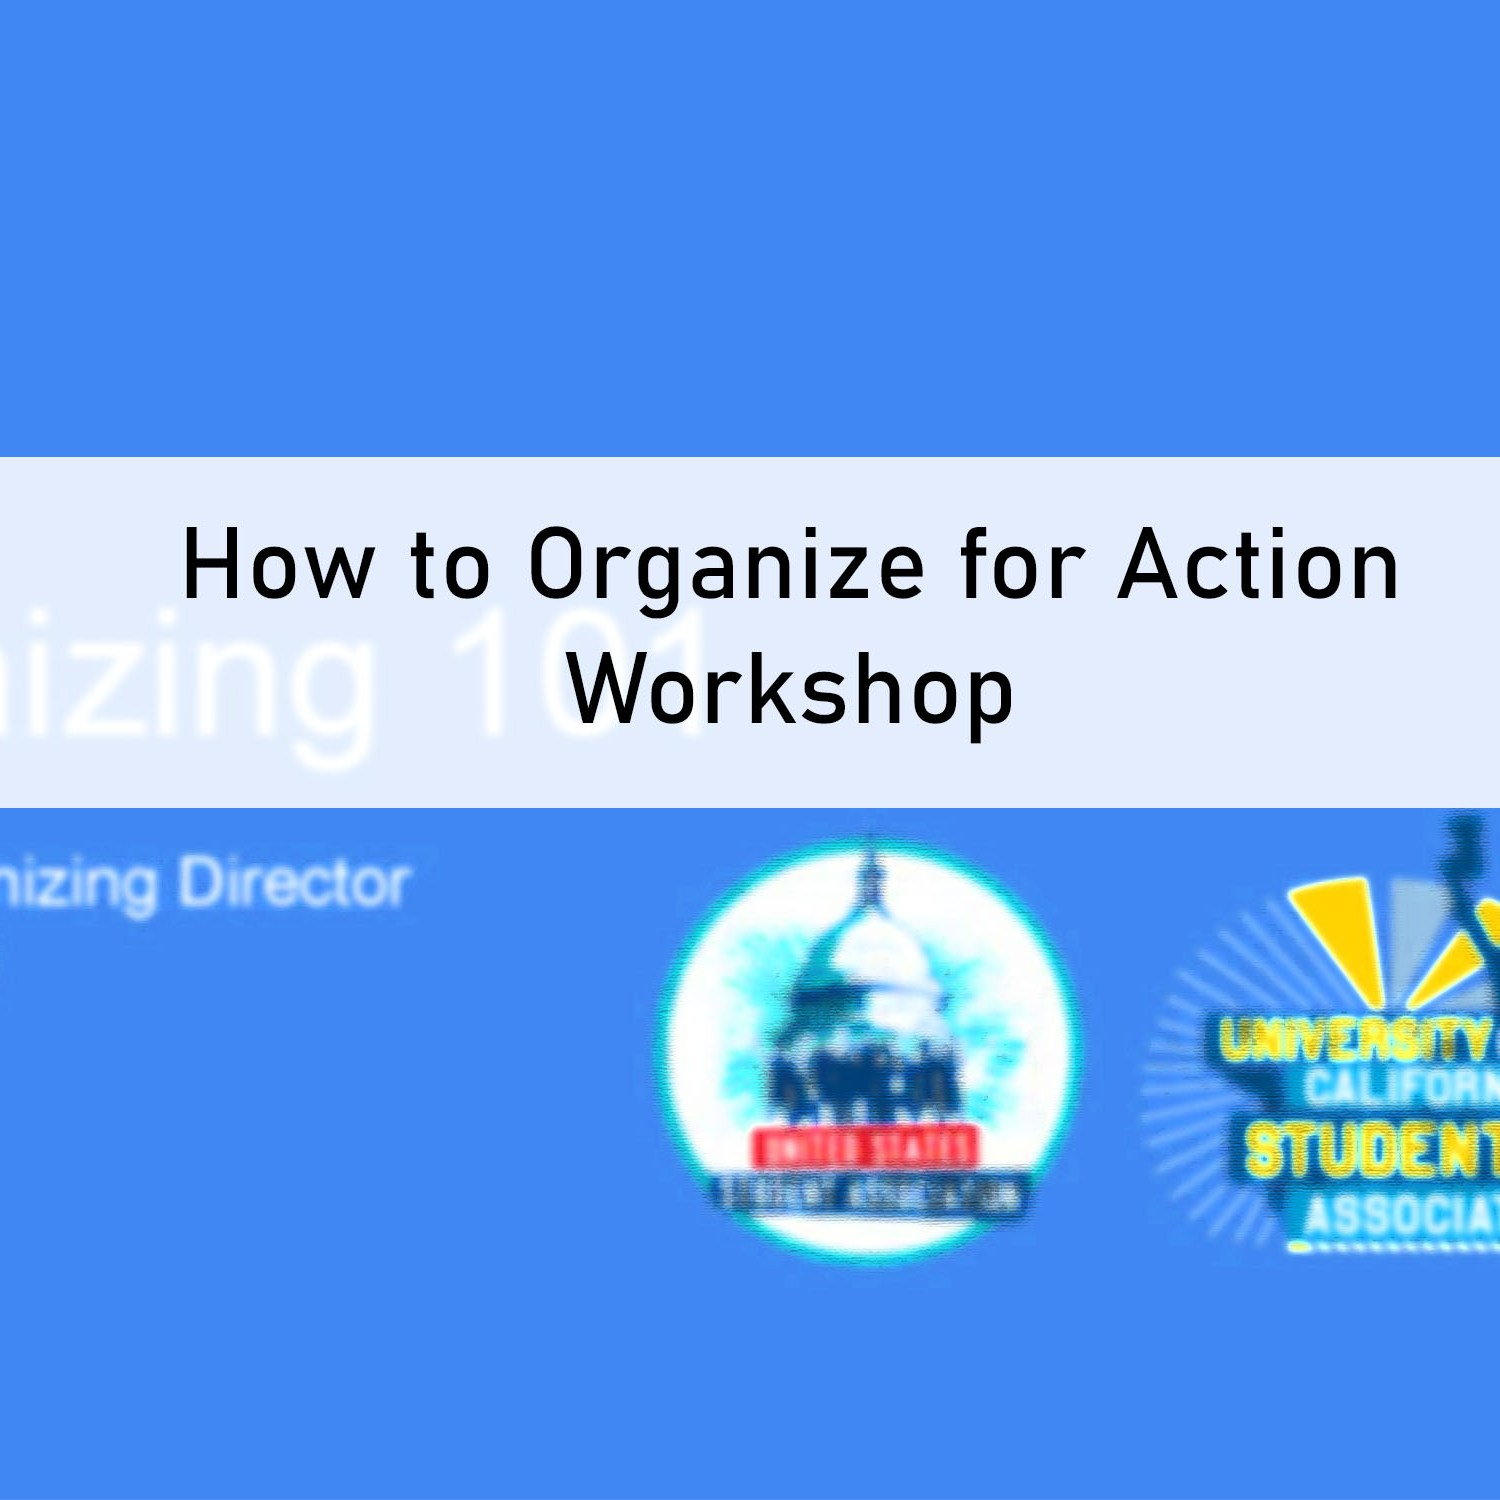 How to Organize for Action Workshop materials